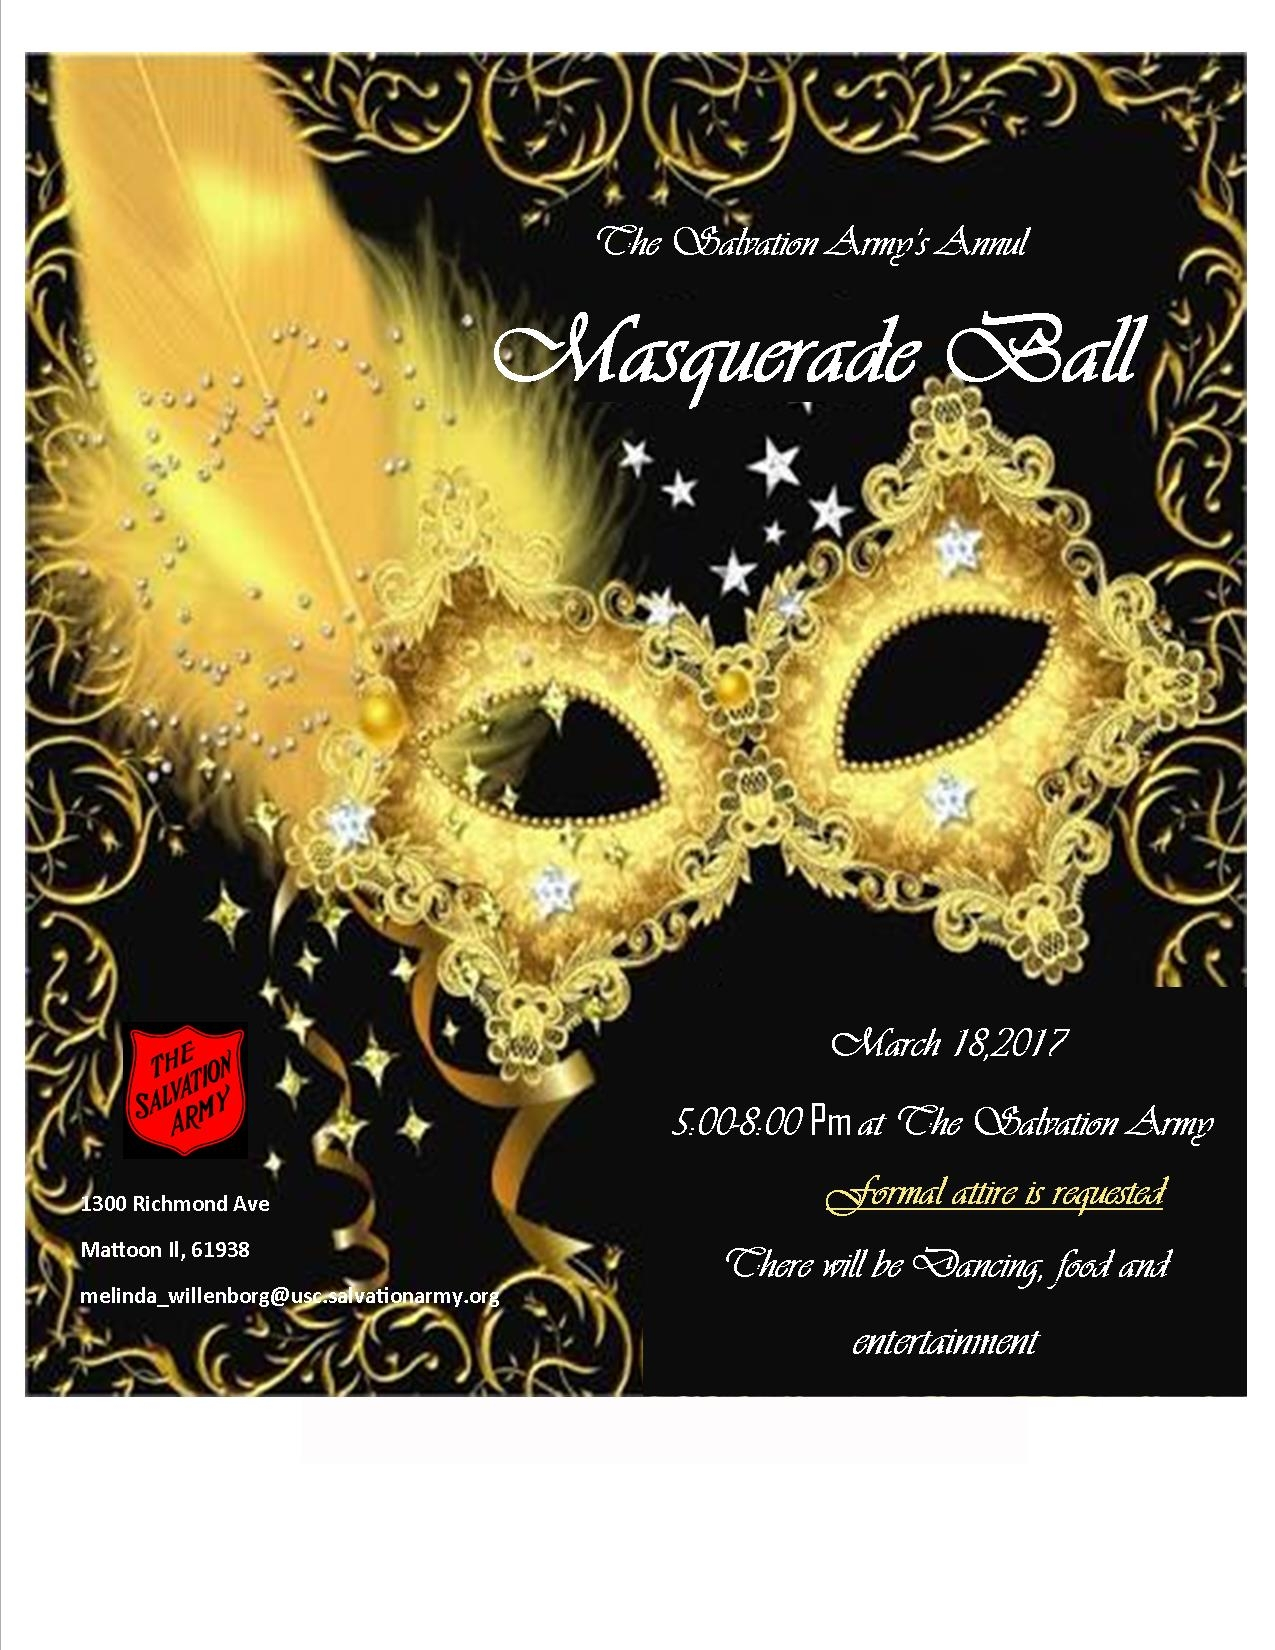 Salvation Army Masquerade Ball